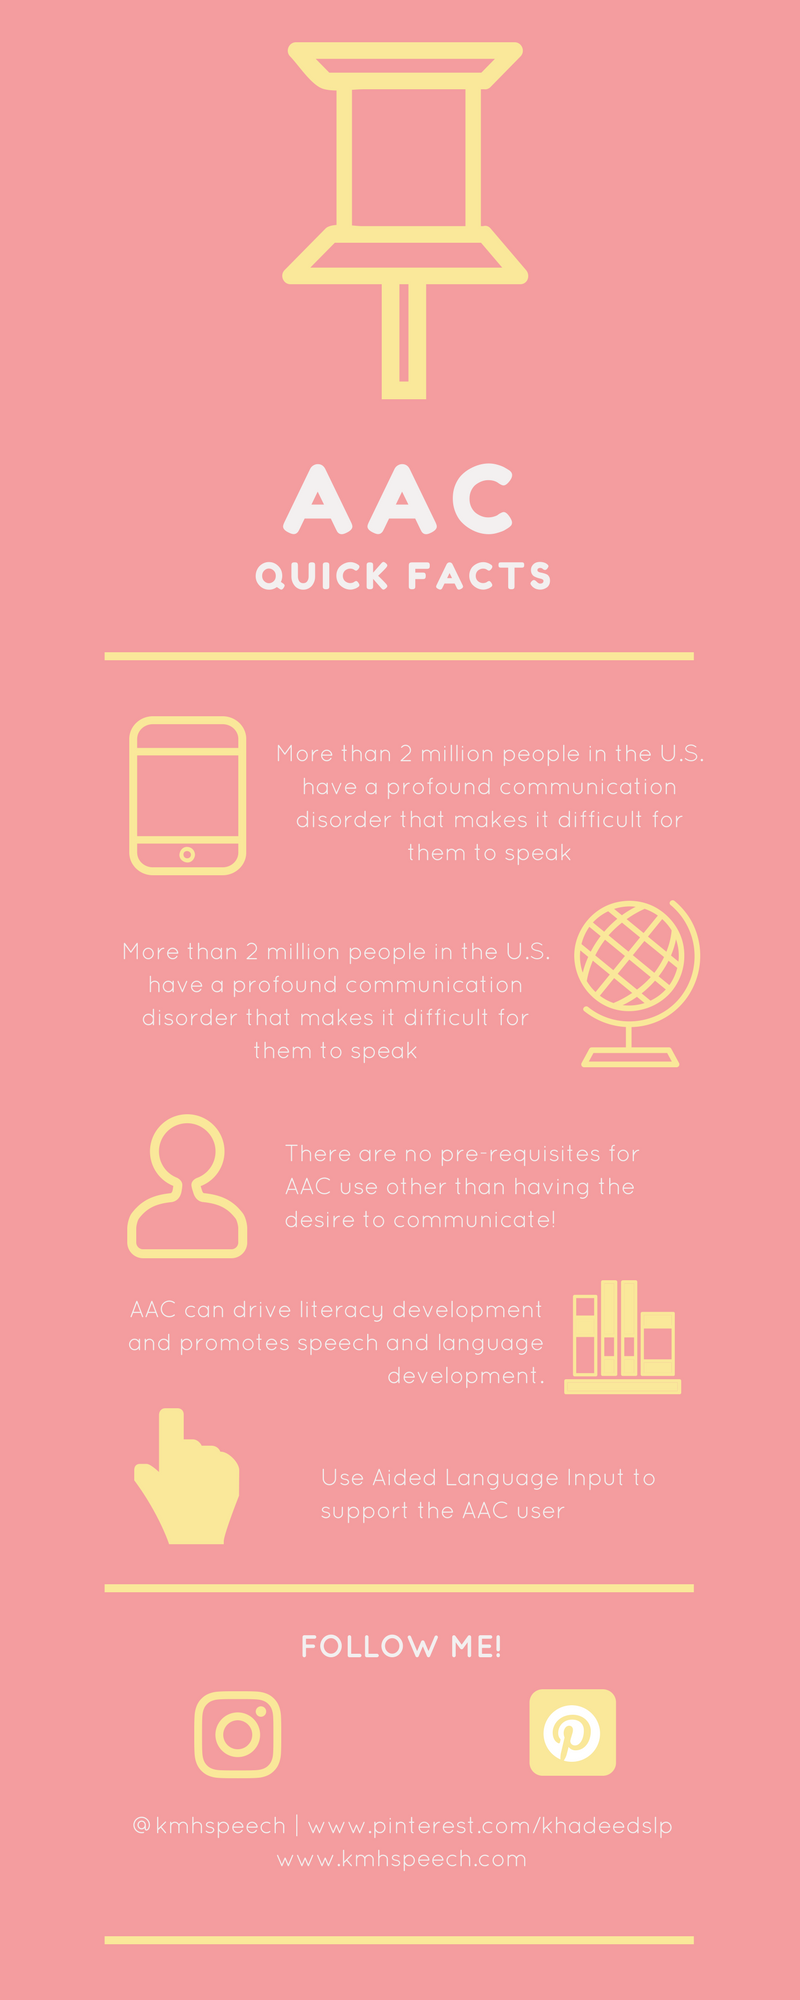 AAC Quick Facts Infographic Oct 2017.png